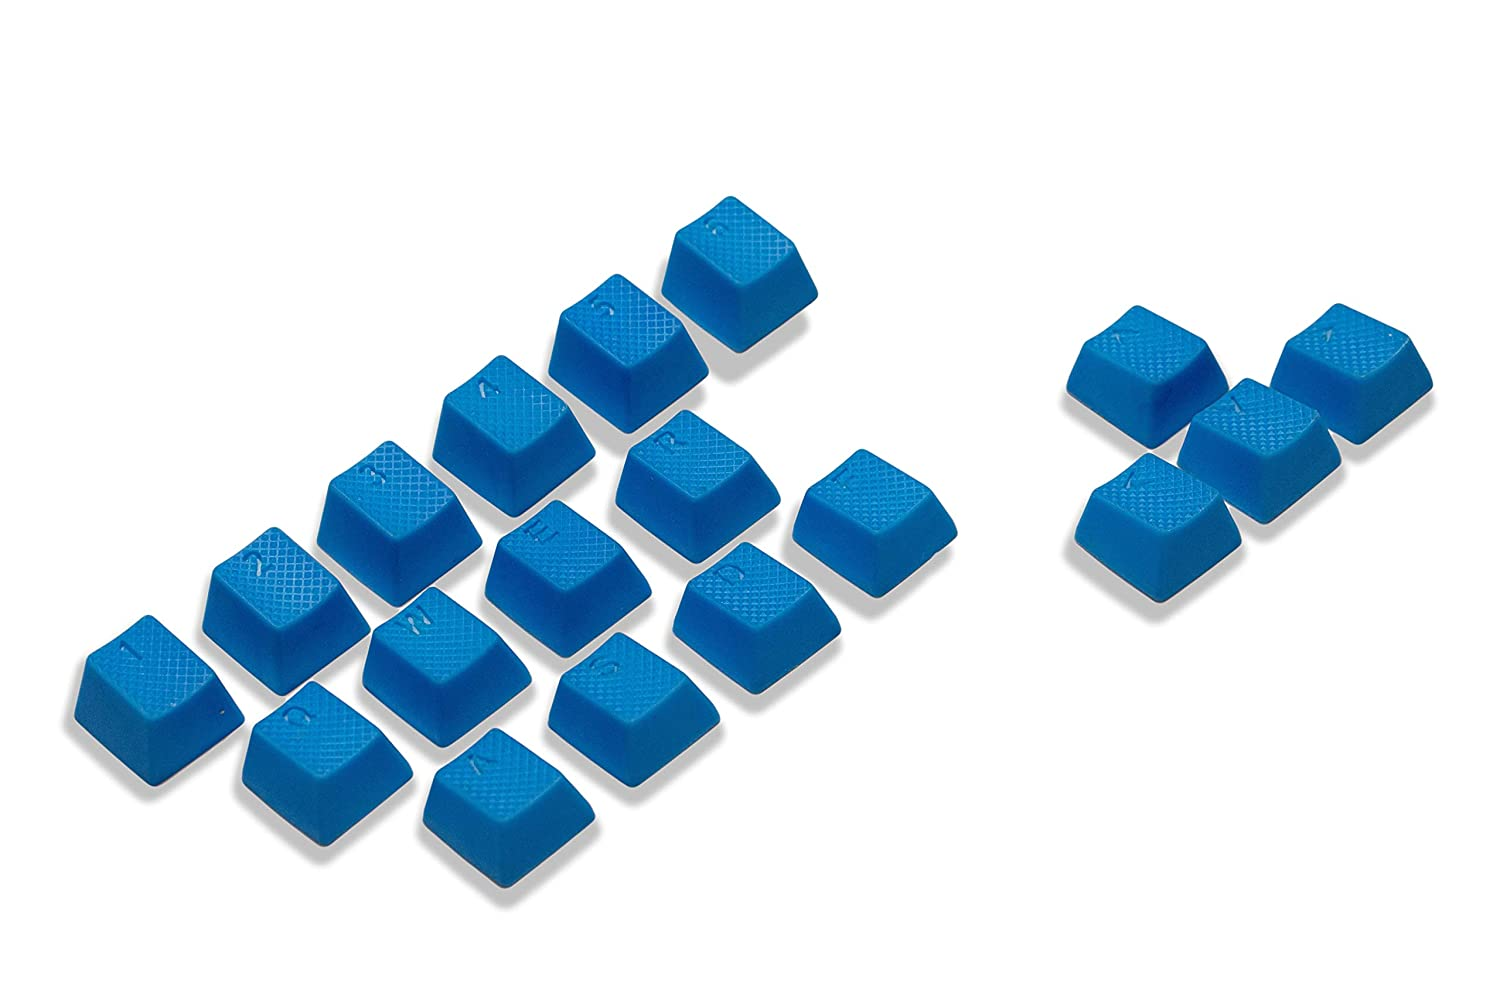 VULTURE Rubber Keycaps Cherry MX Double Shot Backlit 18 Keycap Set Compatible for Gaming Mechanical Keyboard OEM Profile Doubleshot Rubberized Diamond Textured Tactile Grip with Key Puller Blue